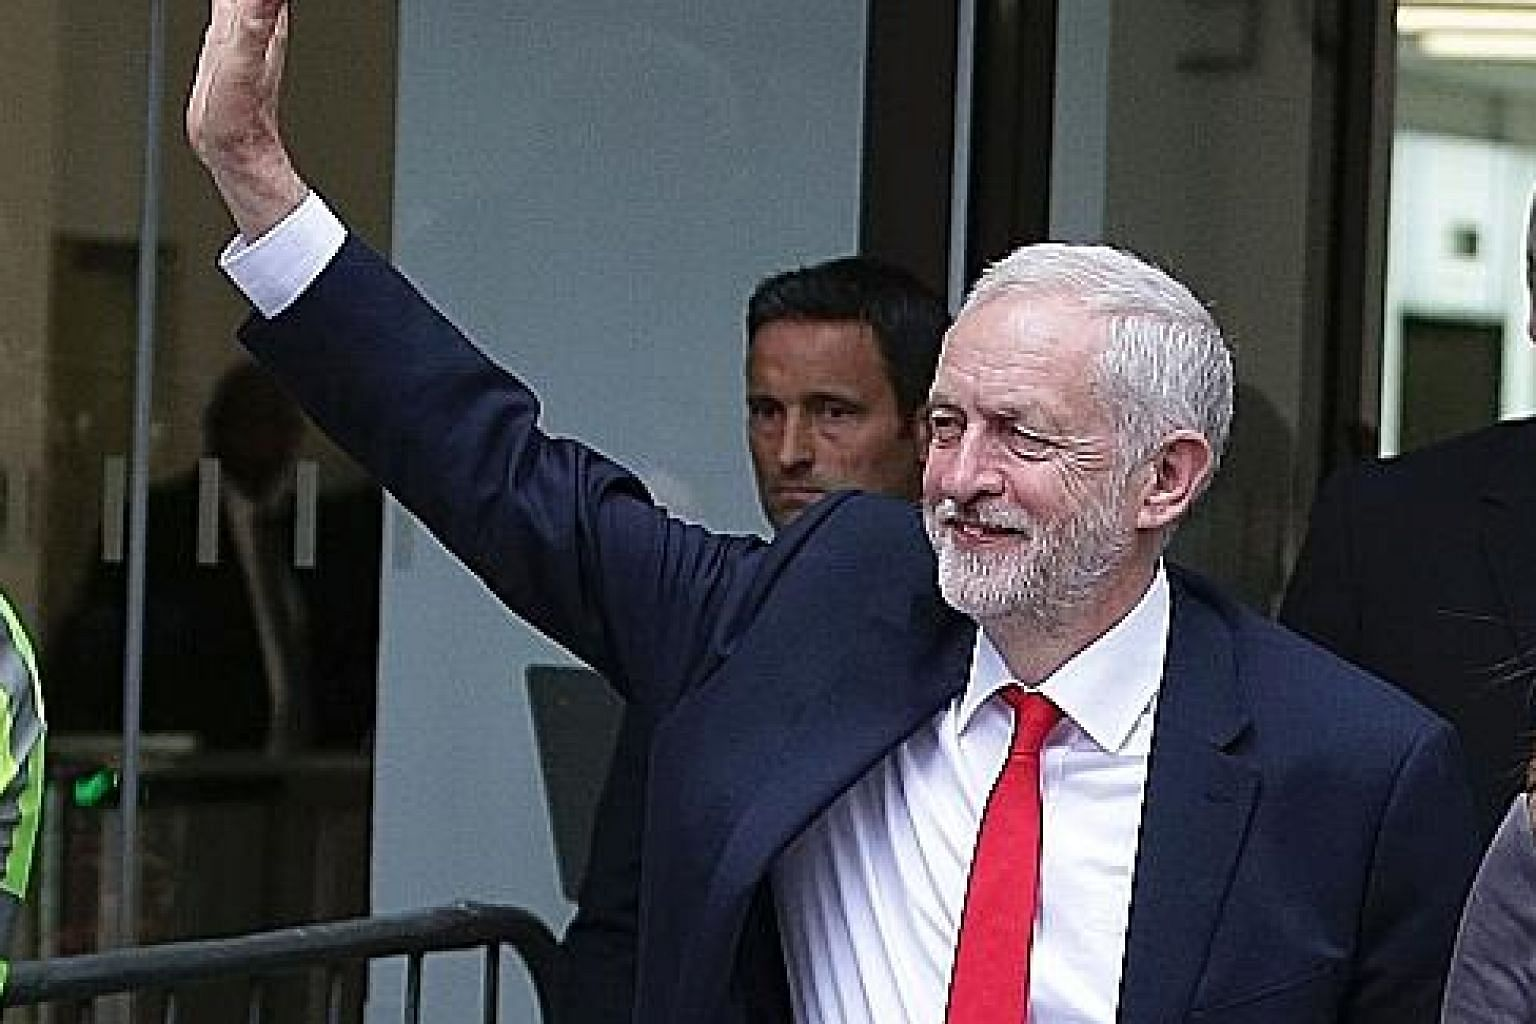 Labour leader Jeremy Corbyn, who began the campaign with historically low favourability numbers, acknowledging supporters as he left the party headquarters in central London yesterday after his stunning comeback.